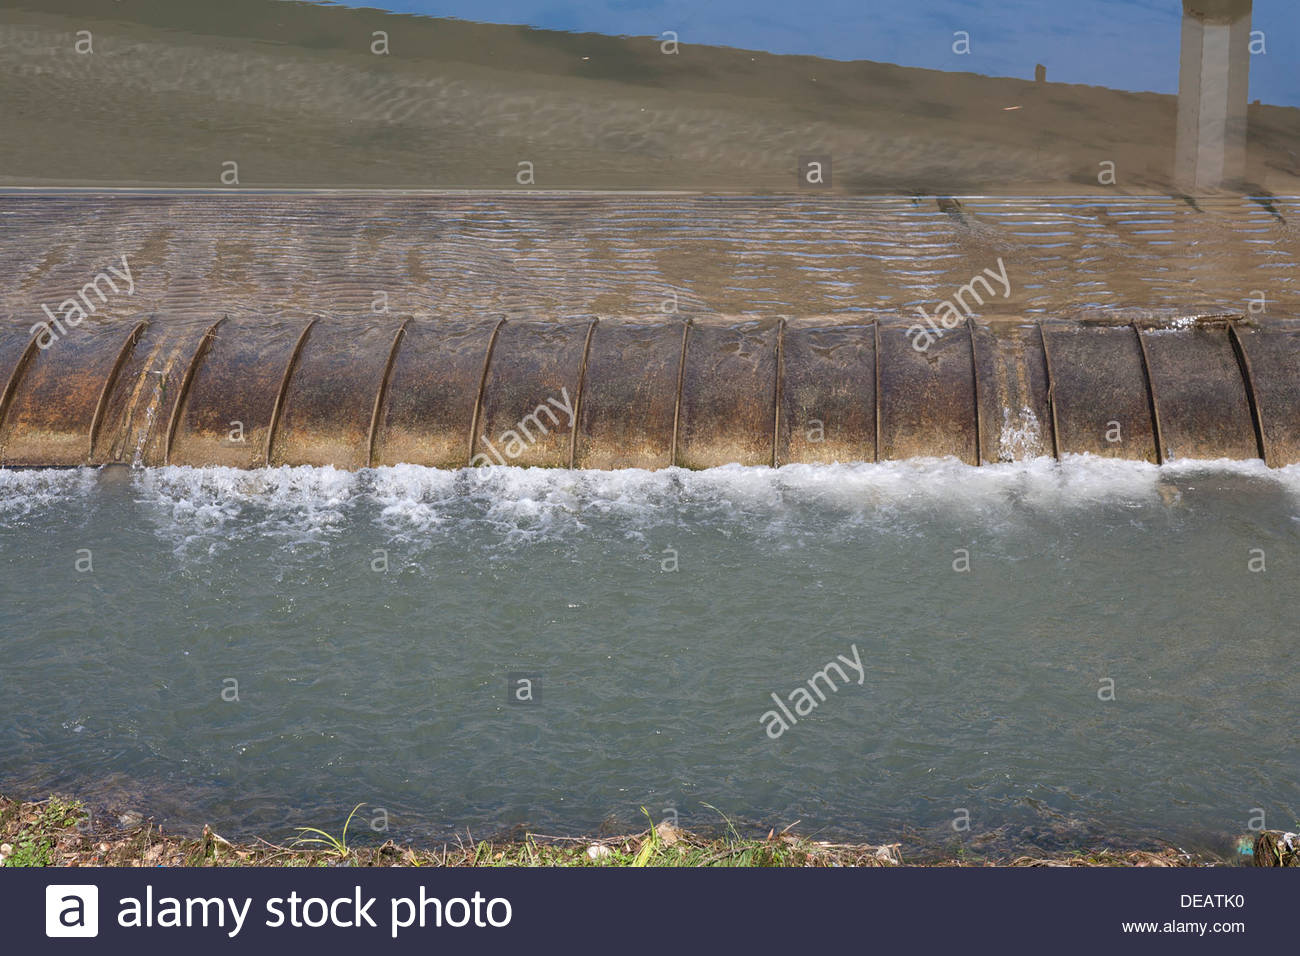 lowered sluice gate for flood protection on the Rio Nabão in the Town of Tomar central Portugal - Stock Image